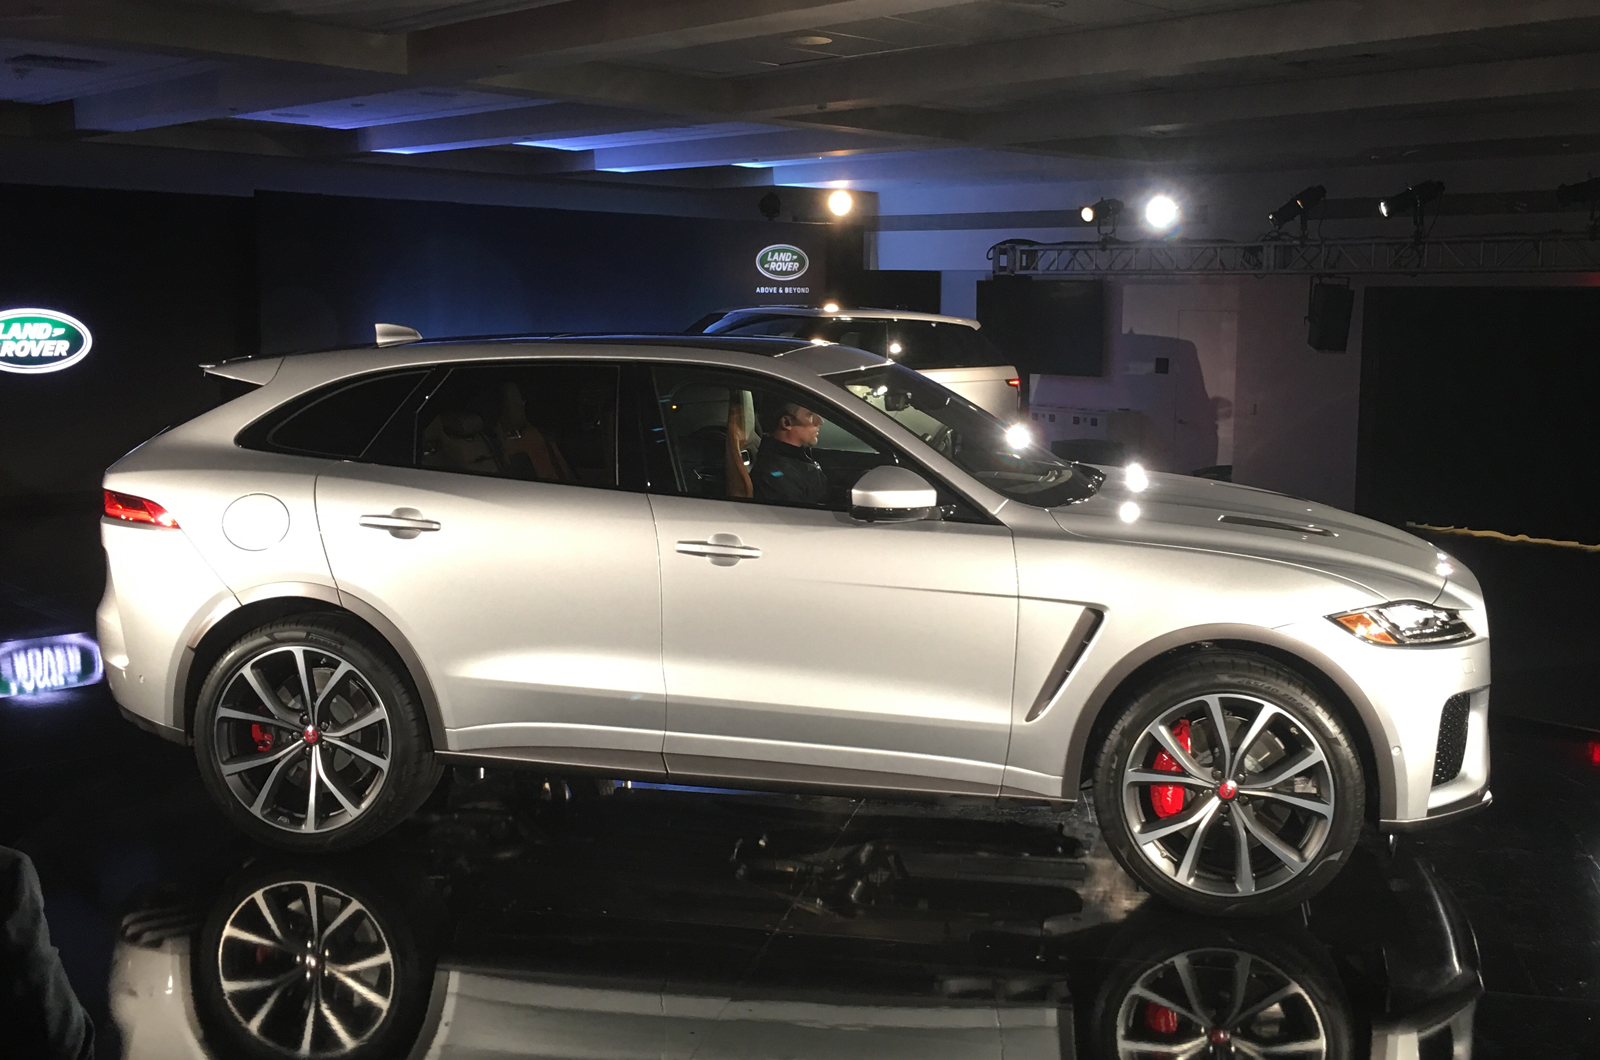 2019 Jaguar F-Pace SVR: News, Design, Engine, Price >> 542bhp Jaguar F Pace Svr Squares Up To Porsche Macan Turbo